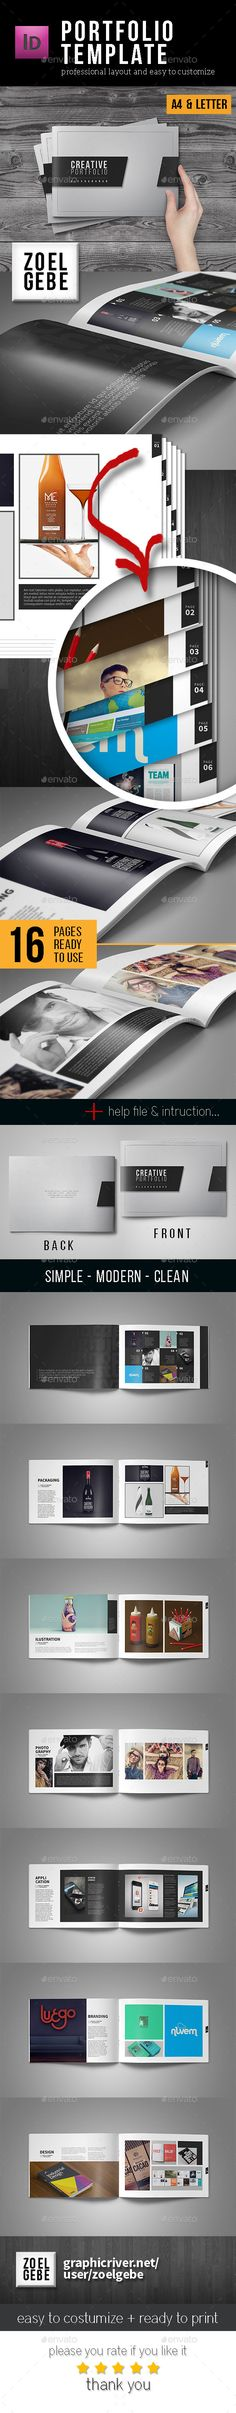 Portfolio Template — InDesign INDD #photography #interior template • Available here → https://graphicriver.net/item/portfolio-template/12759896?ref=pxcr